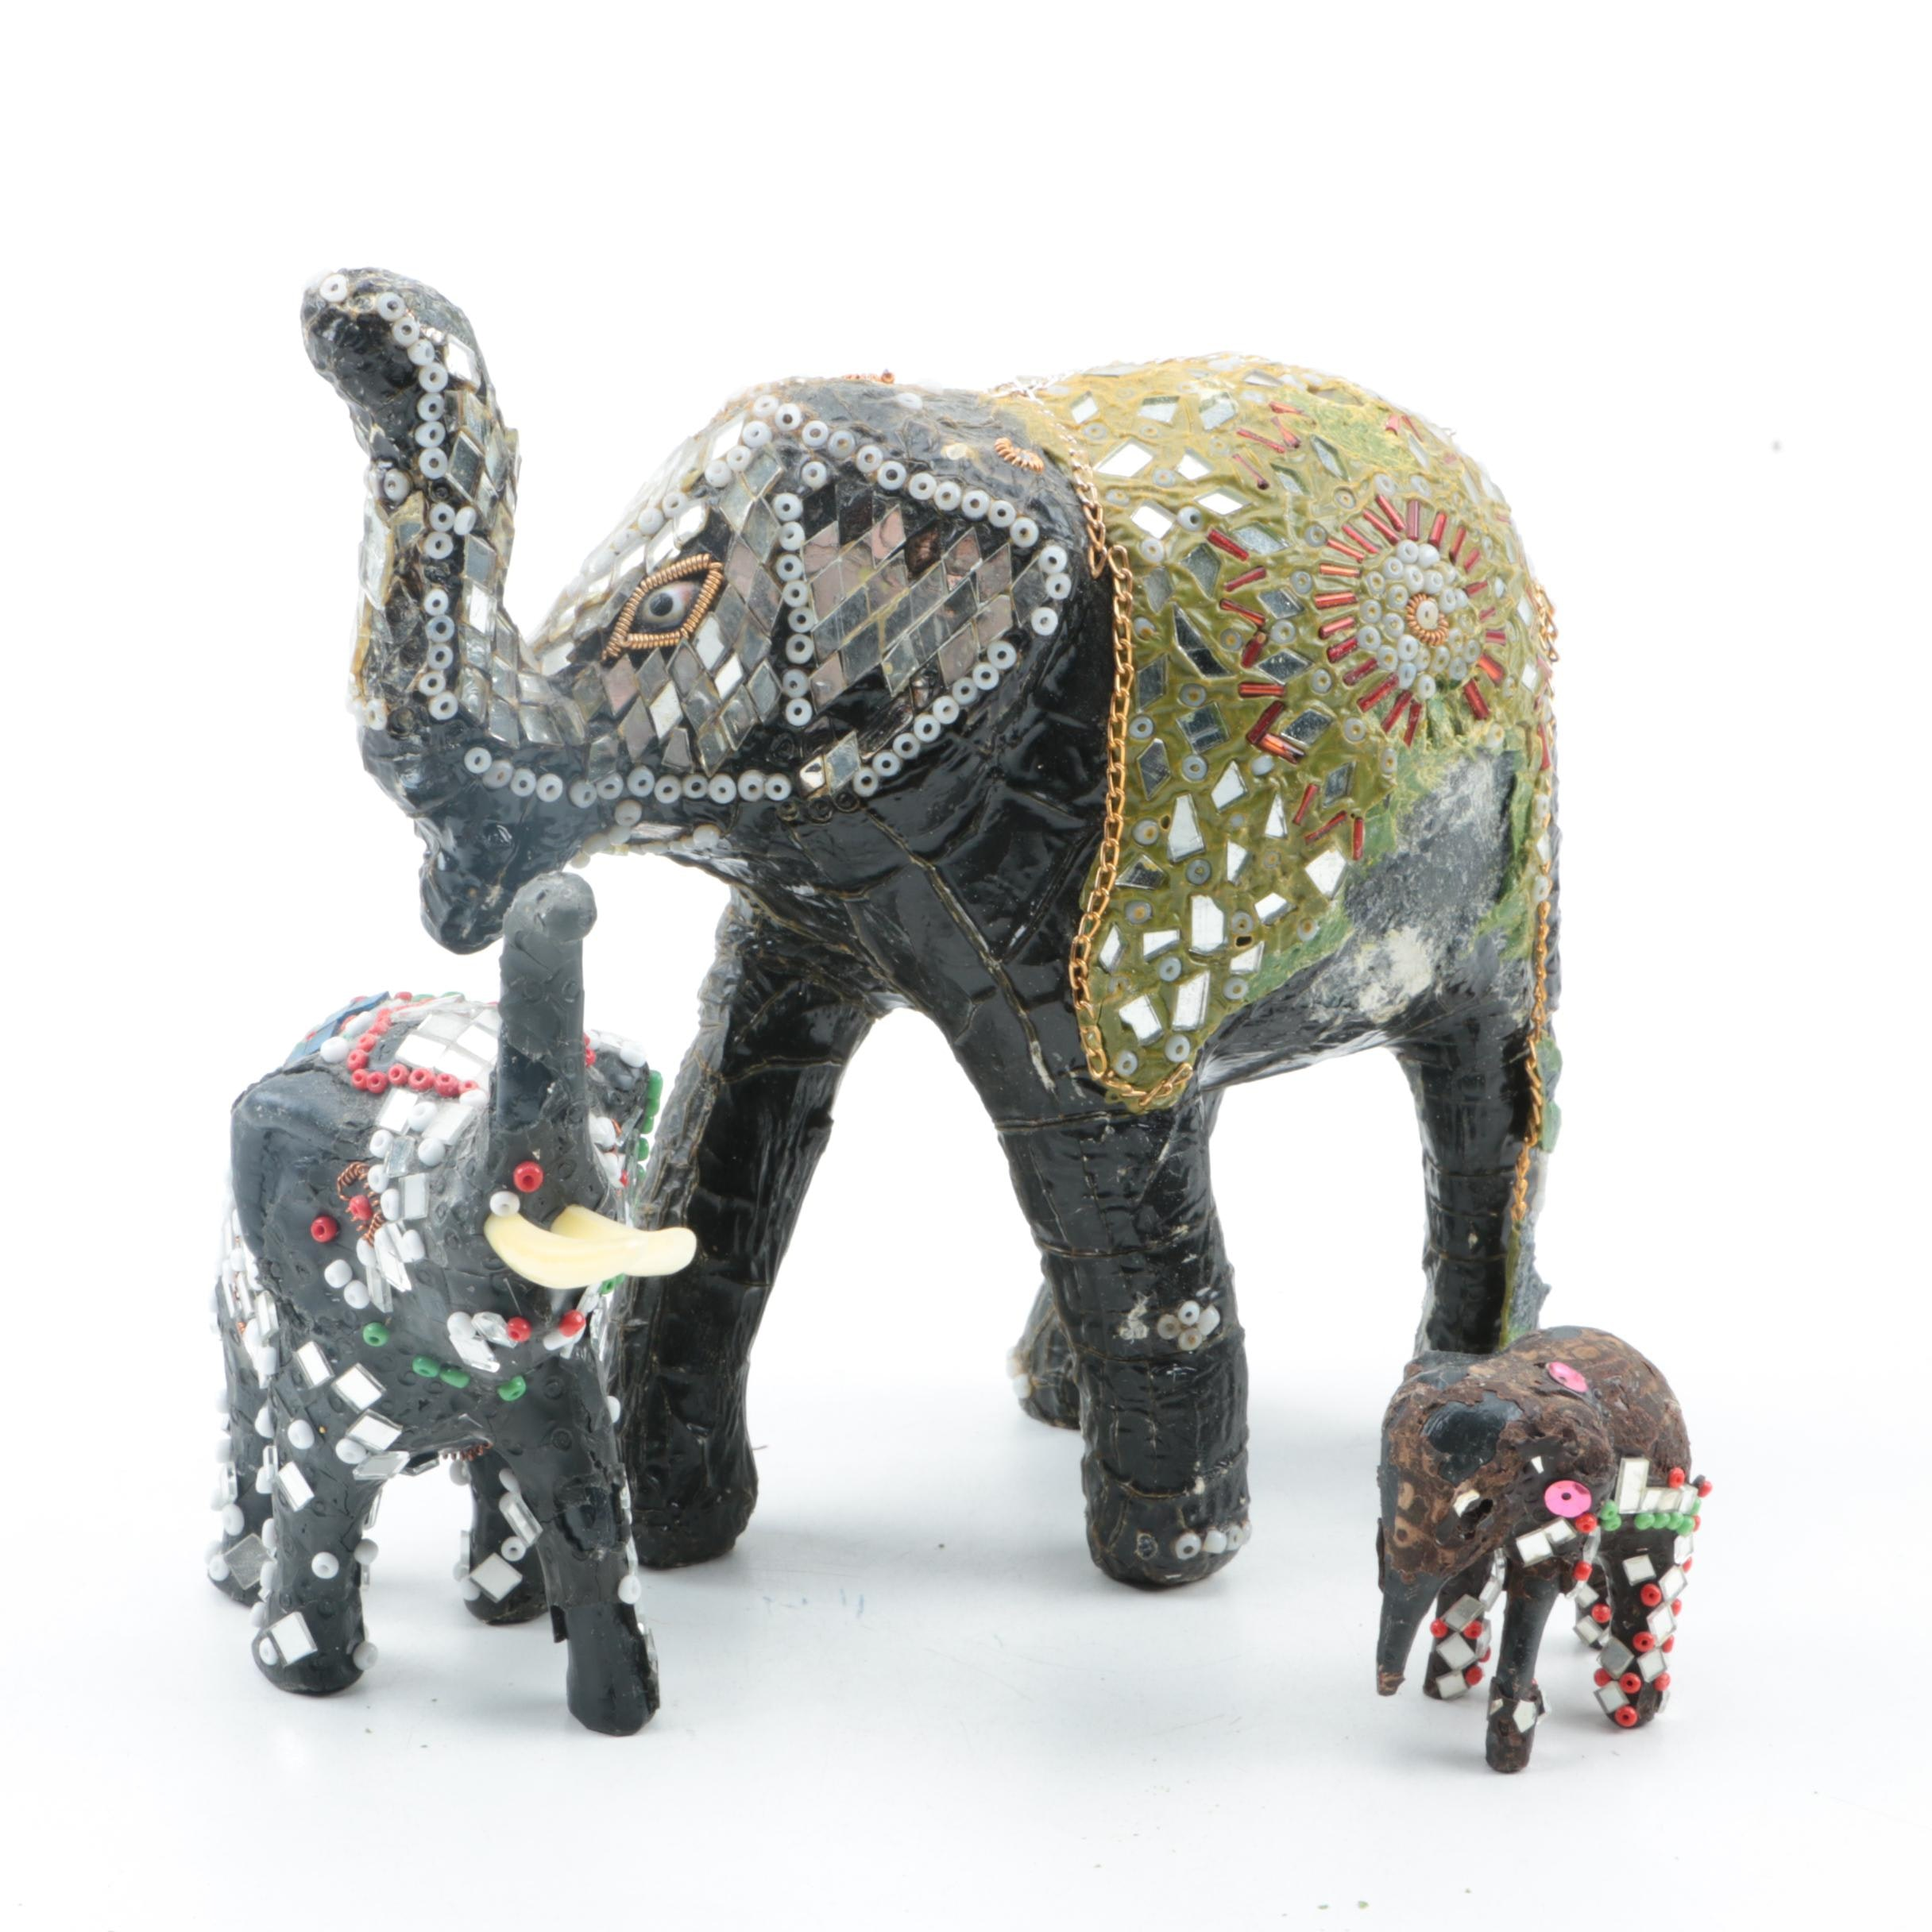 Indian Elephant Figurines in Decorative Costumes